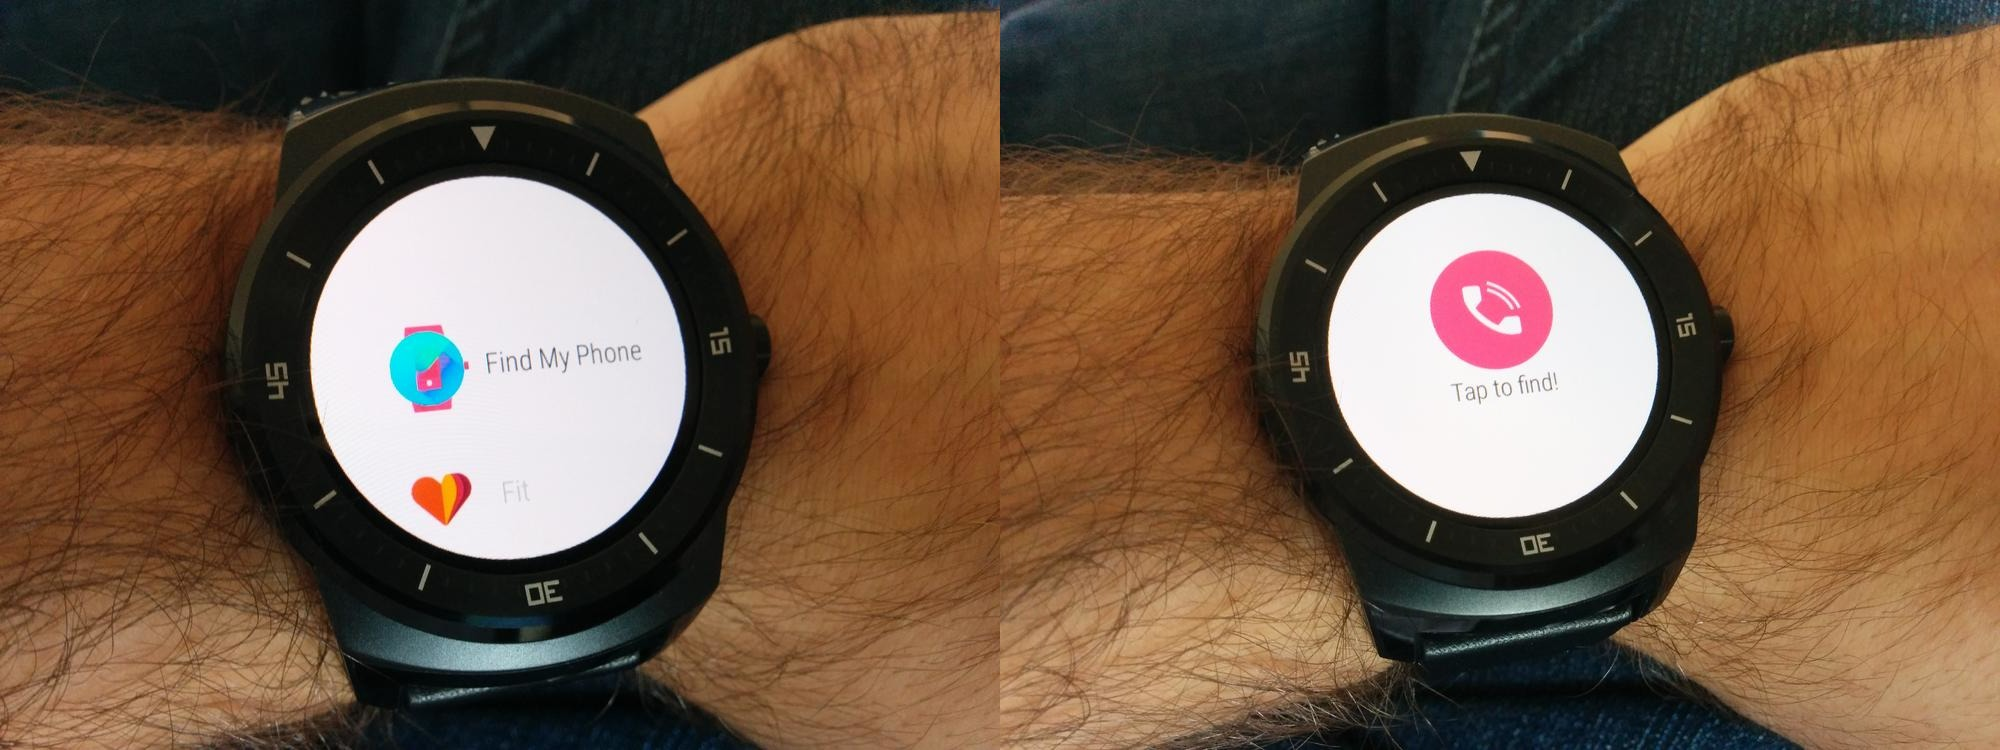 LG_G_watch_R_find_my_phone